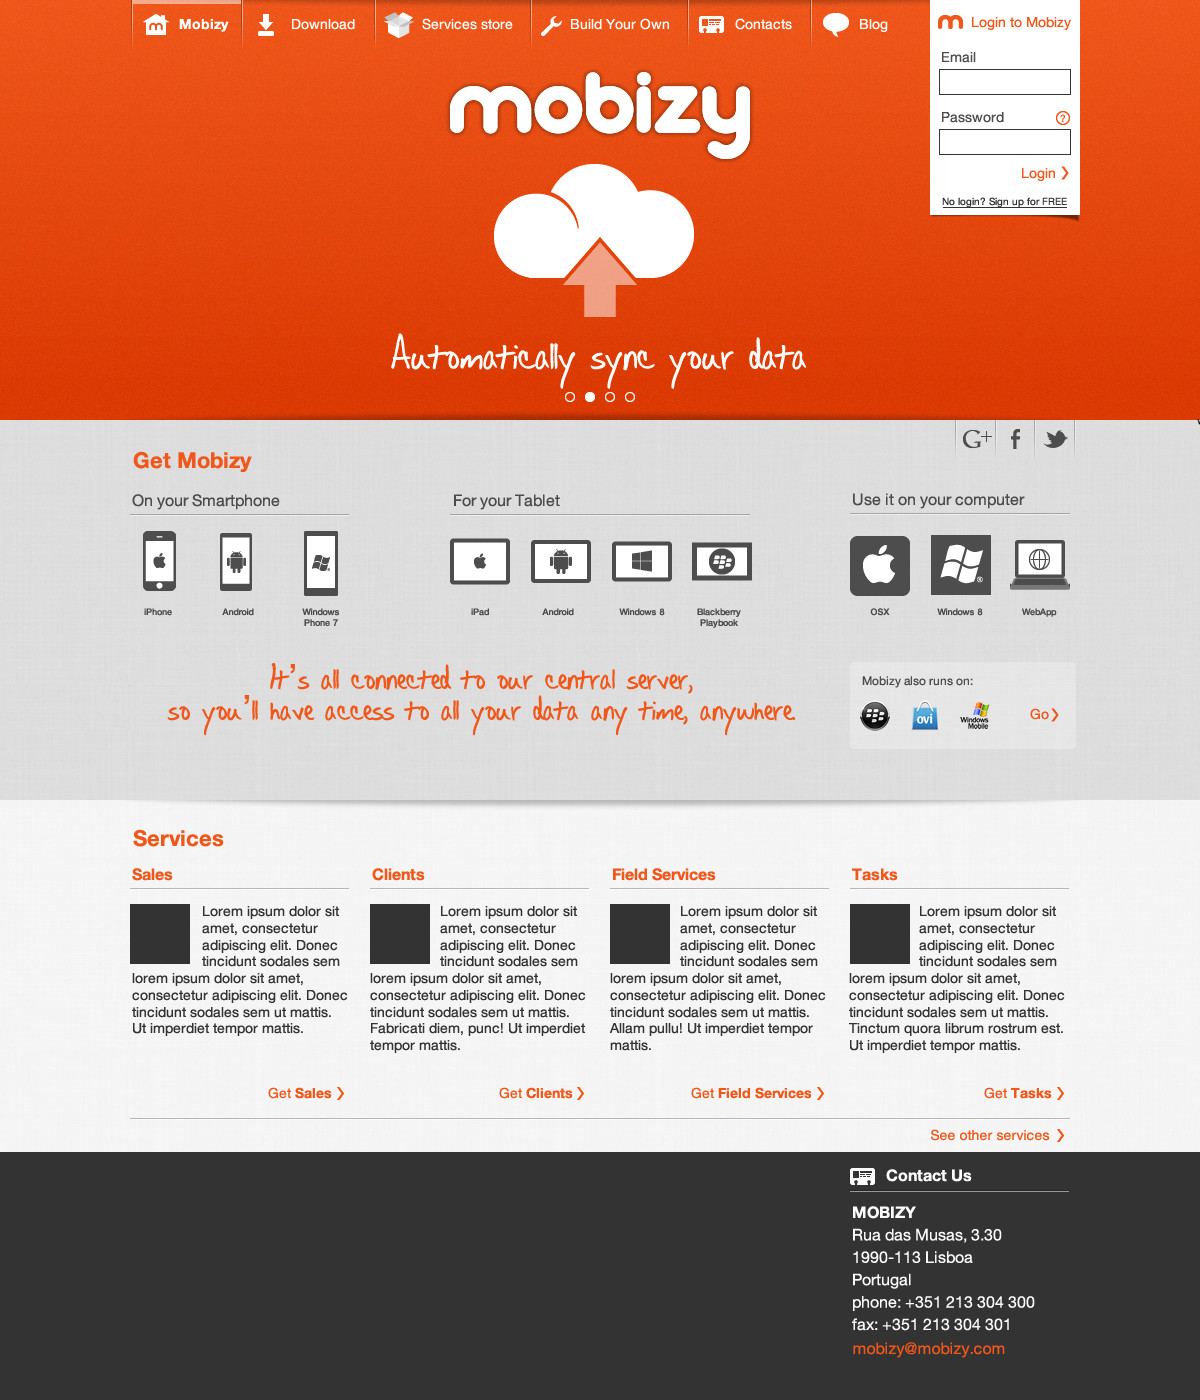 MOBIZY_Site_homepage.png